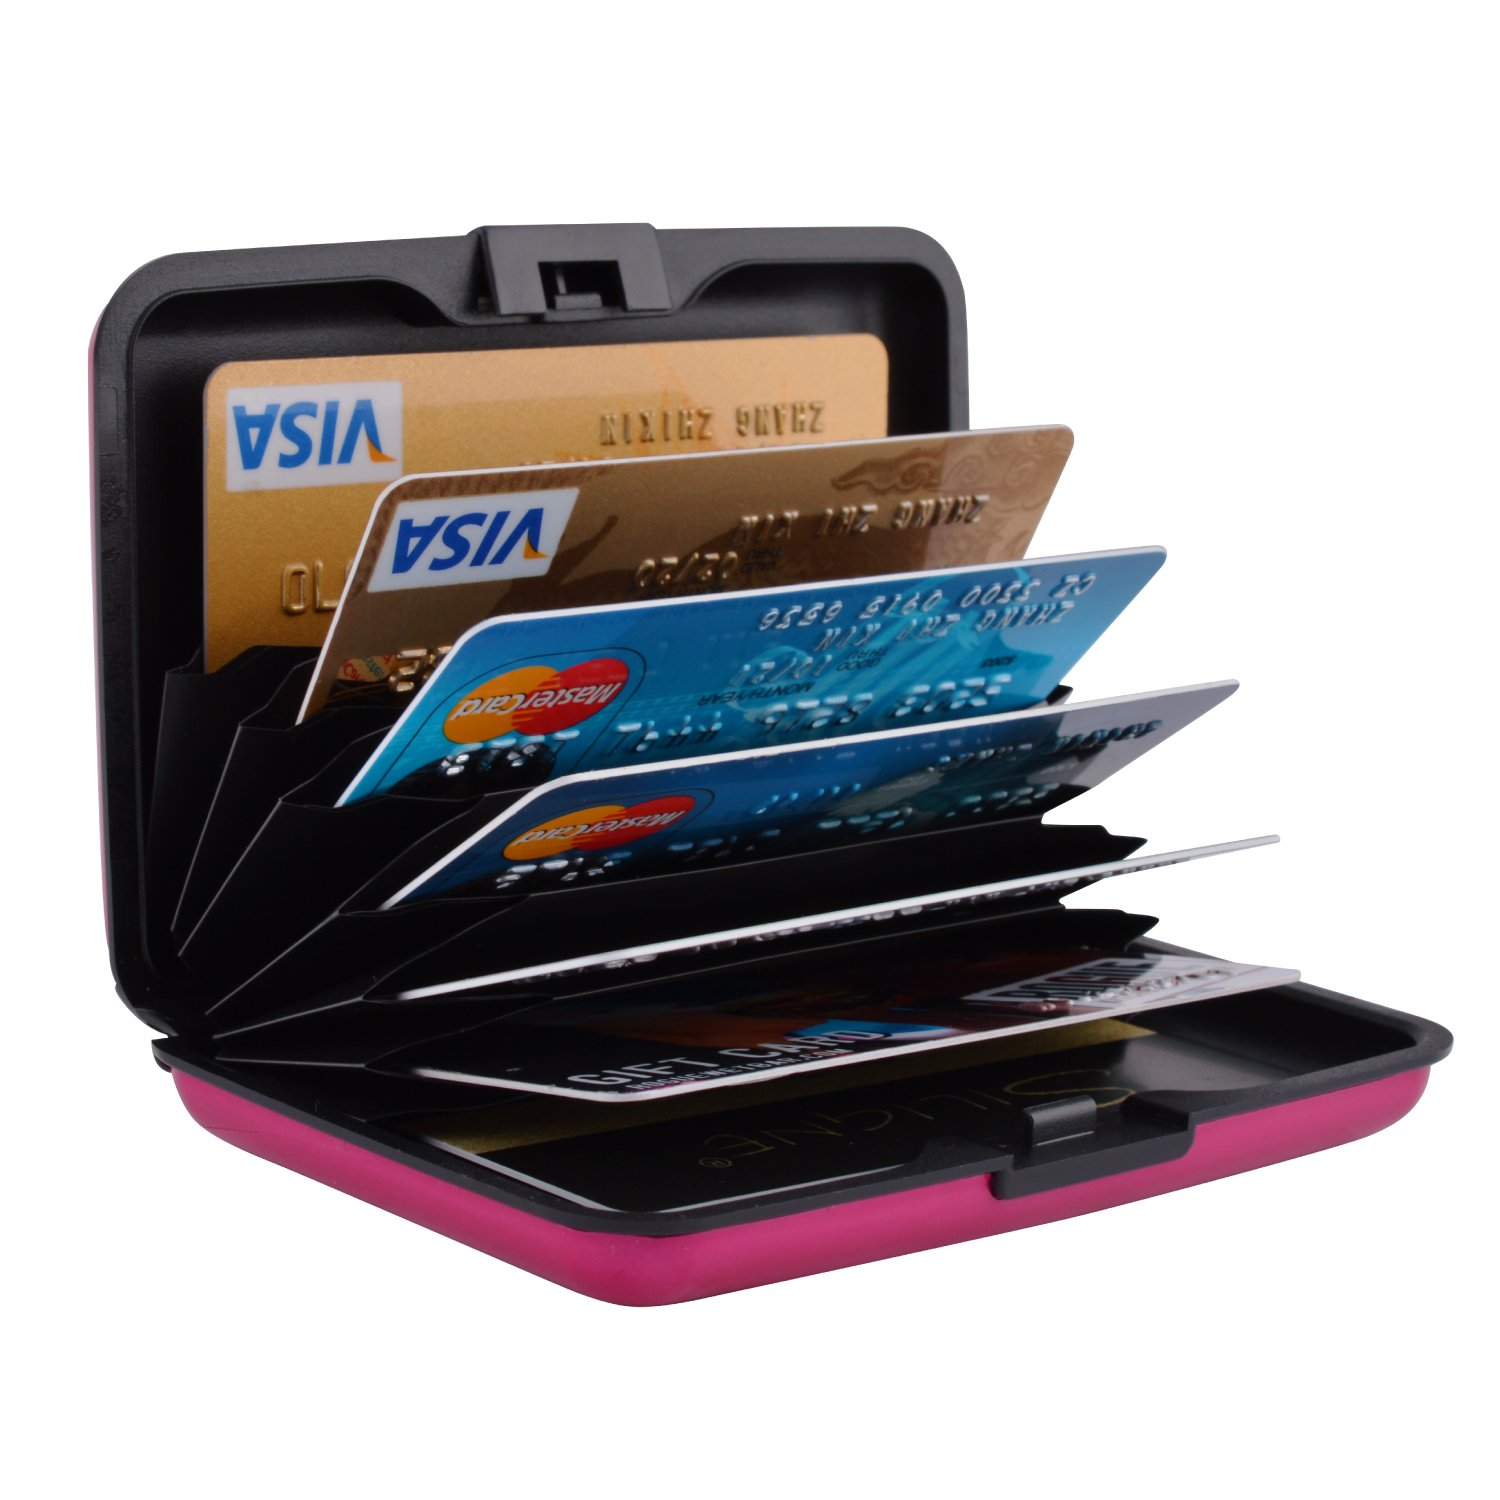 Stainless Steel Card Holder protector Case for Travel and Work LXJ STORE RFID Blocking Credit Card Holder Steel Metal Slim Wallet Metal ID Case Black Credit Card Case for Business Cards